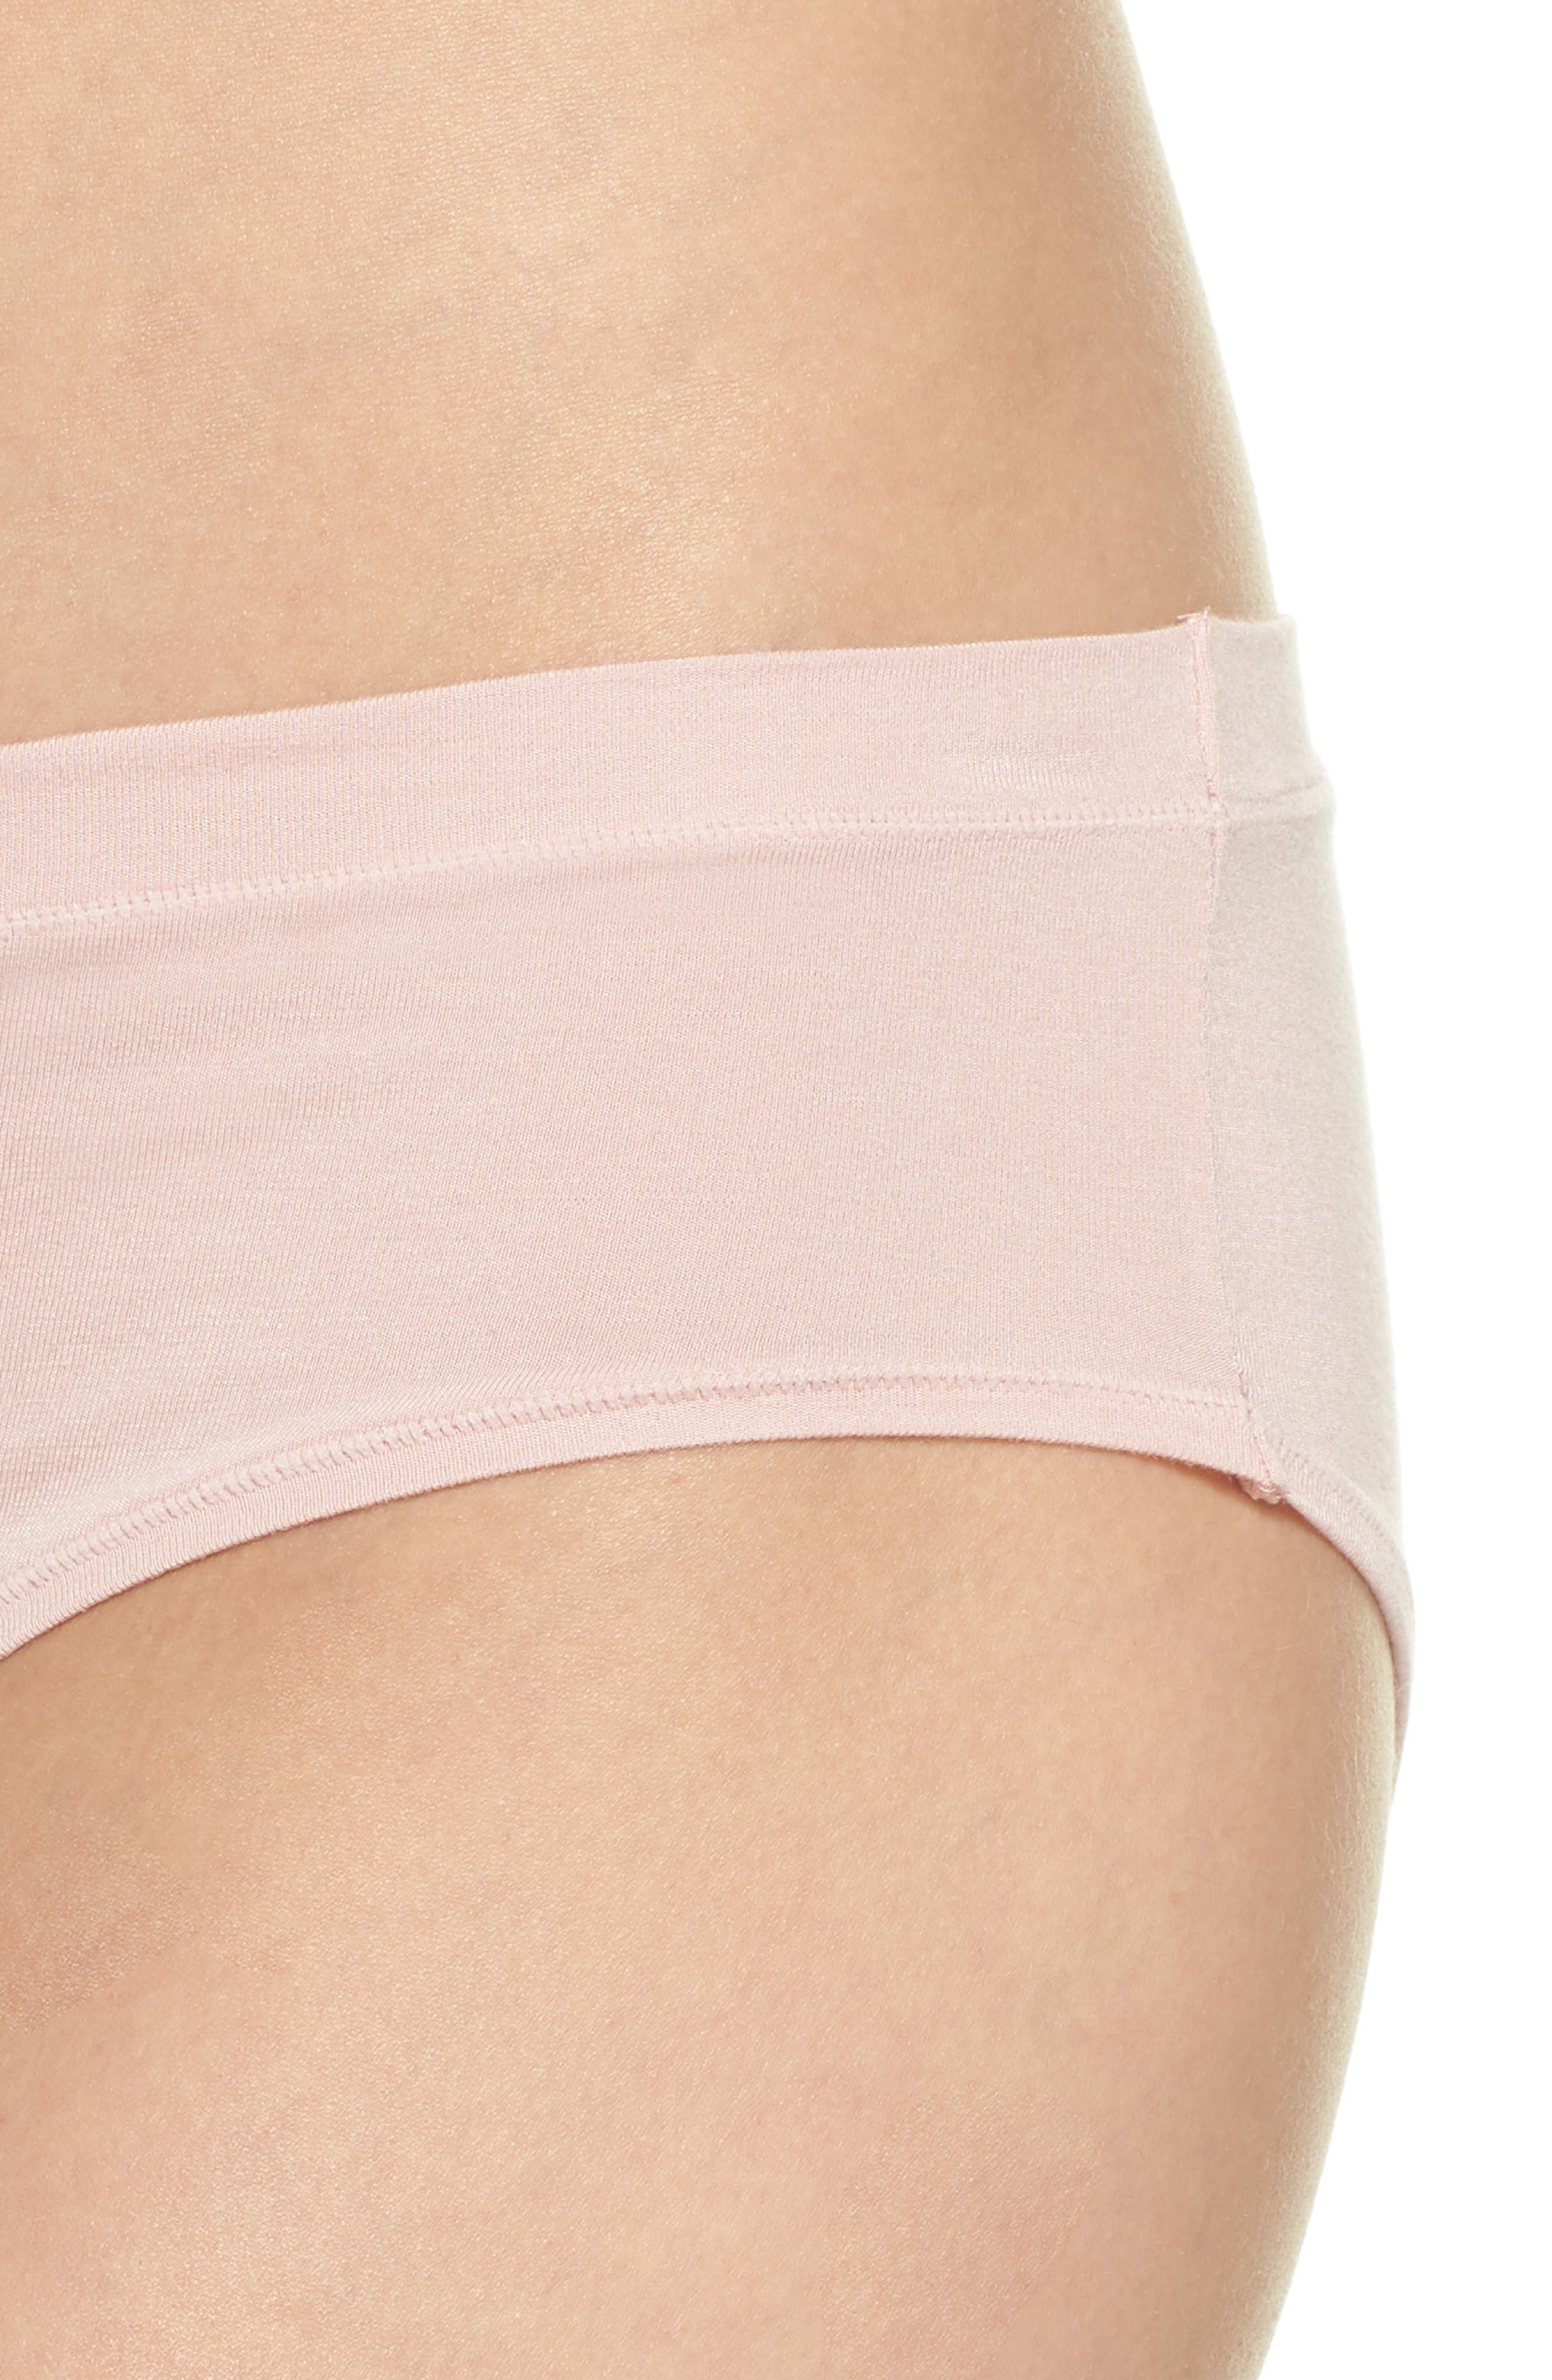 Hipster Briefs,                             Alternate thumbnail 4, color,                             Pink Silver